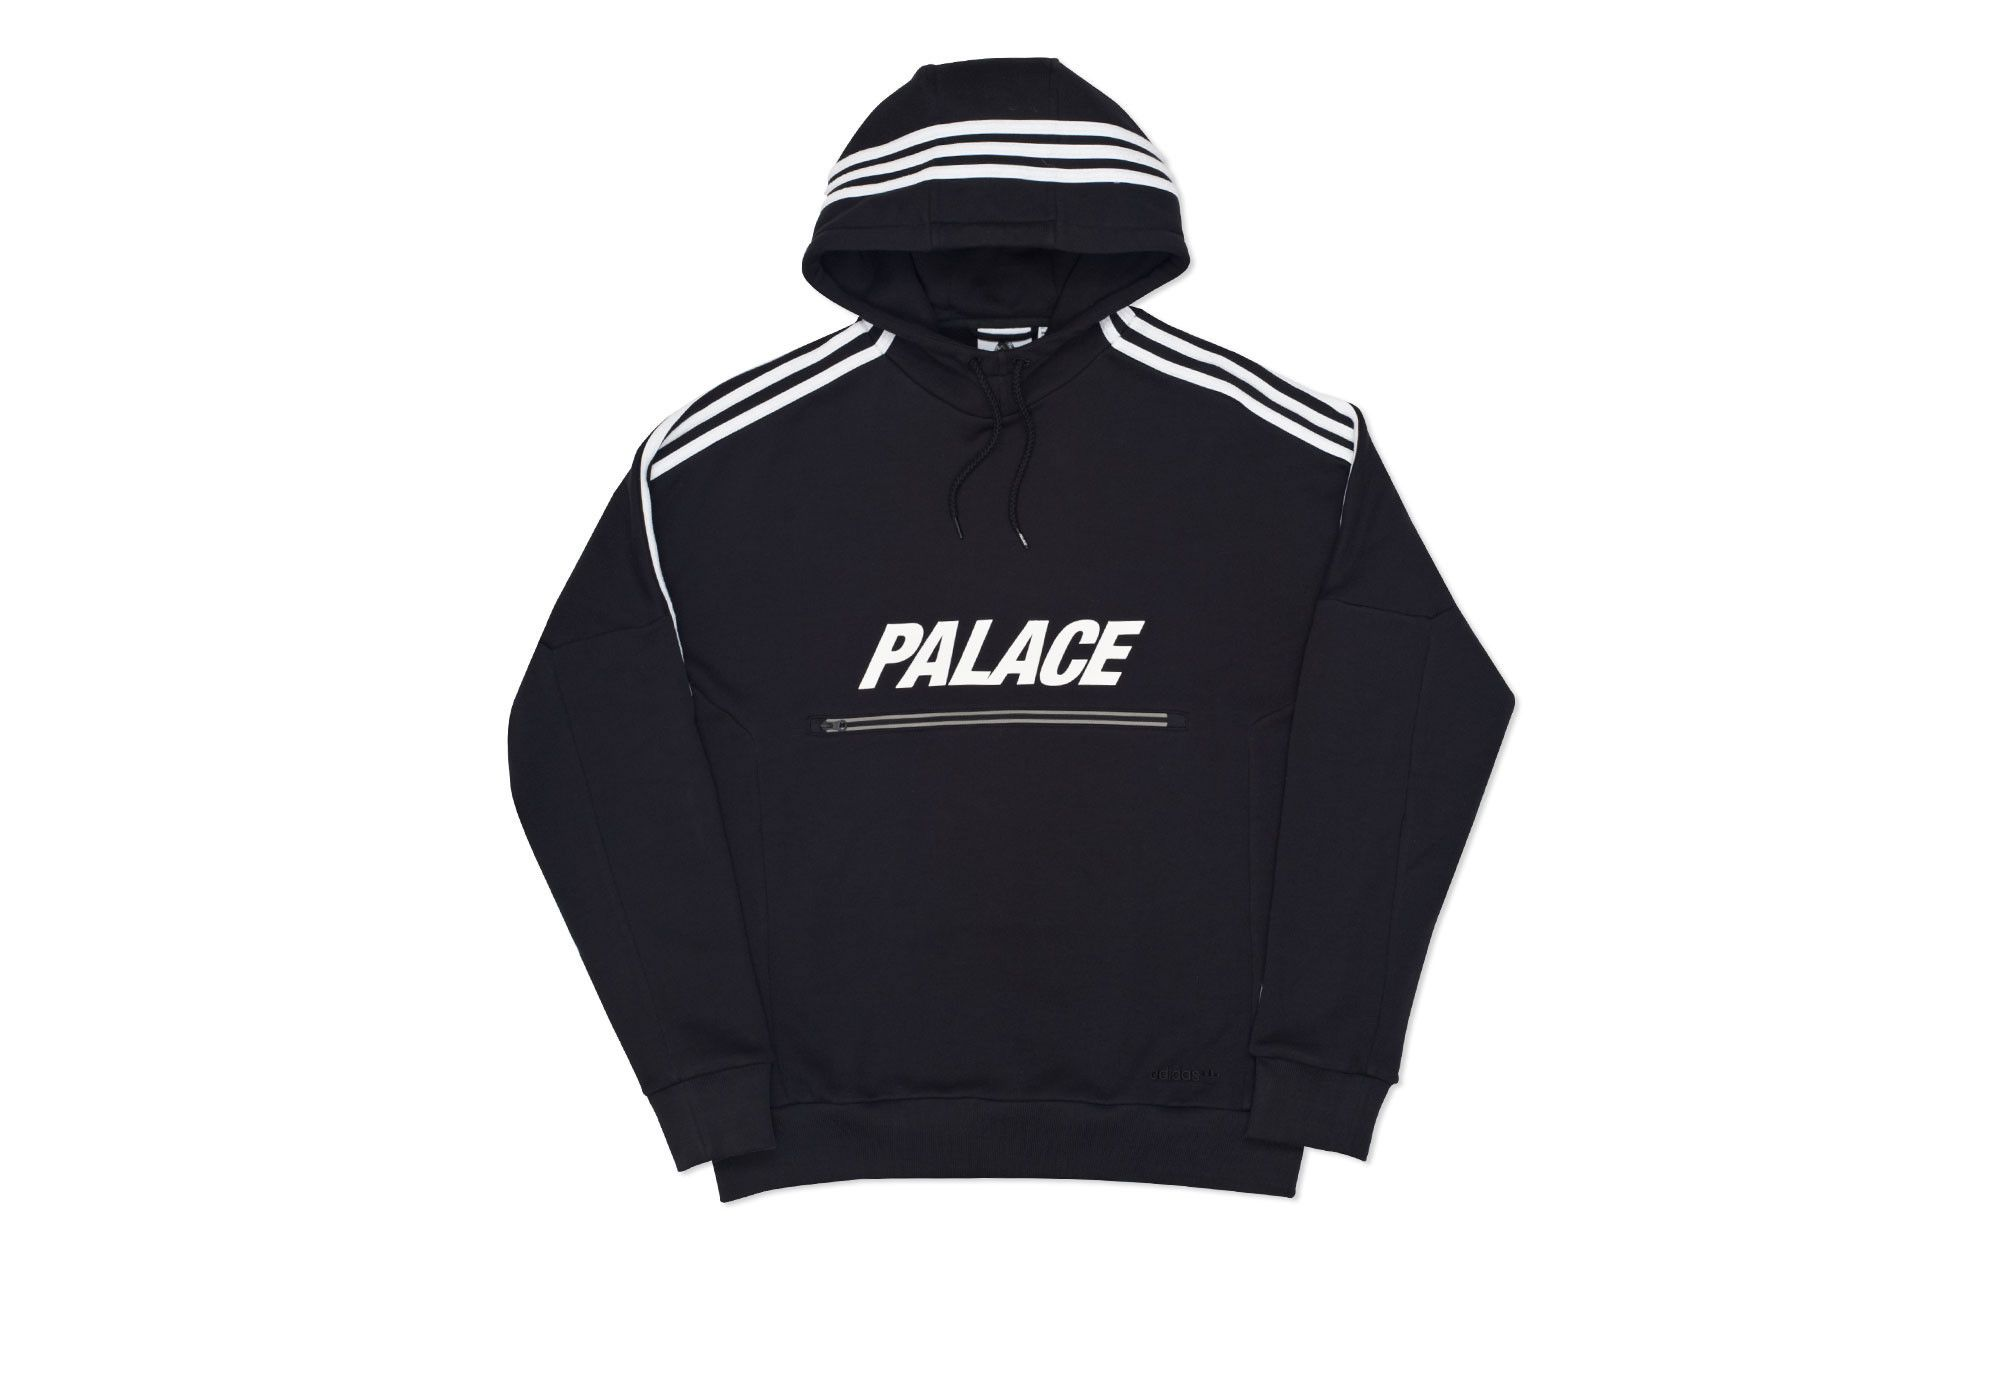 d05caf98 ADIDAS PALACE TRACK TOP BLACK / WHITE | Stuff We Wear | Adidas ...